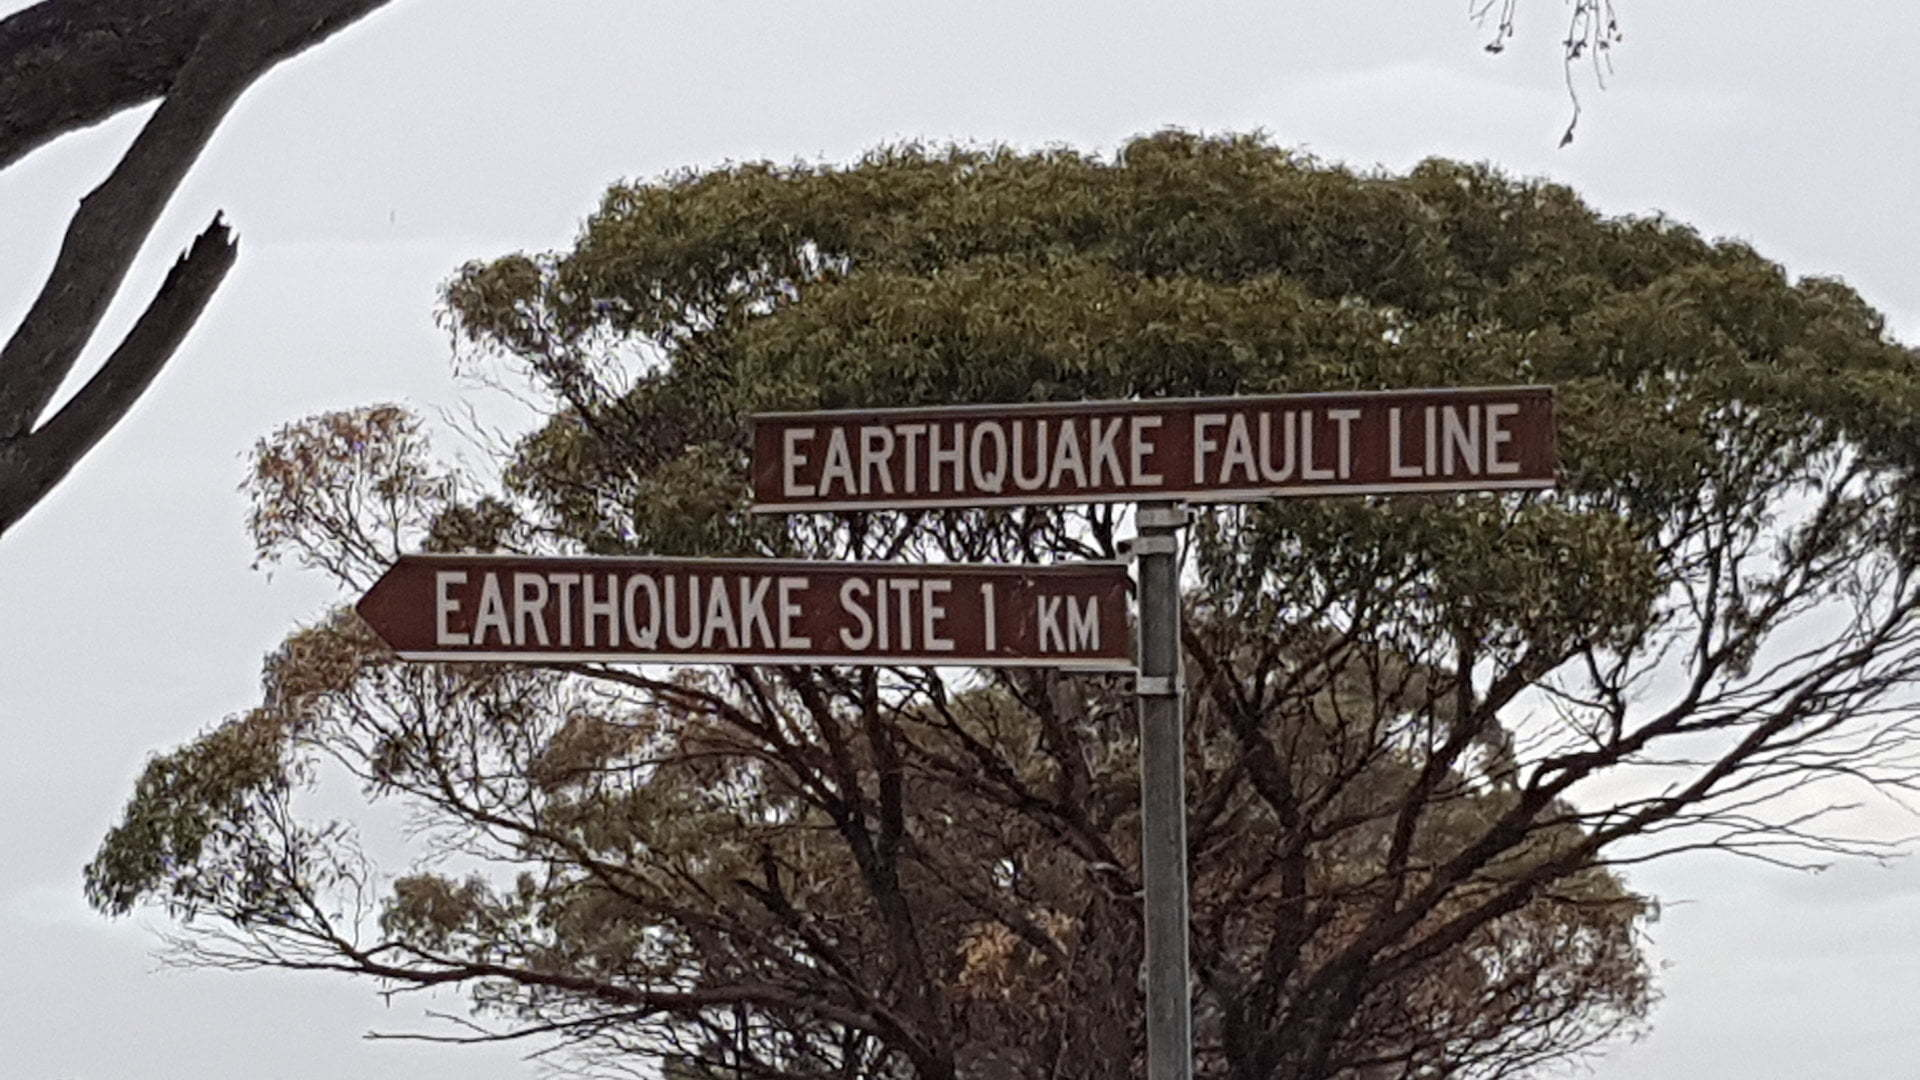 Brown sign of the Earthquake Fault Line taken at the site of where the fault line exists, also showing a brown sign to an Earthquake Site 1km away